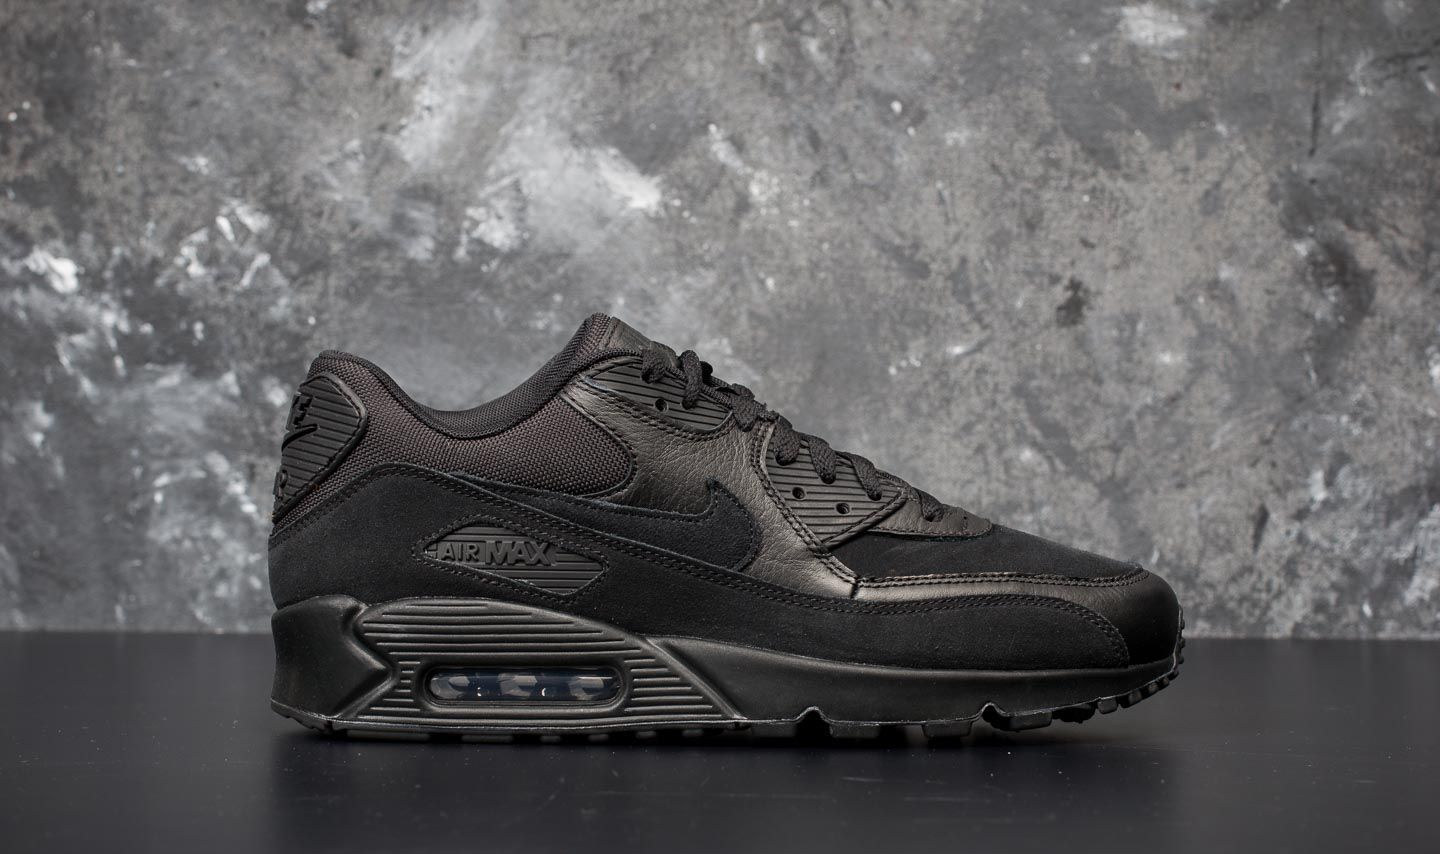 timeless design 8d5c3 7e6ee ... usa nike air max 90 premium black black at a great price 143 buy at  bf188